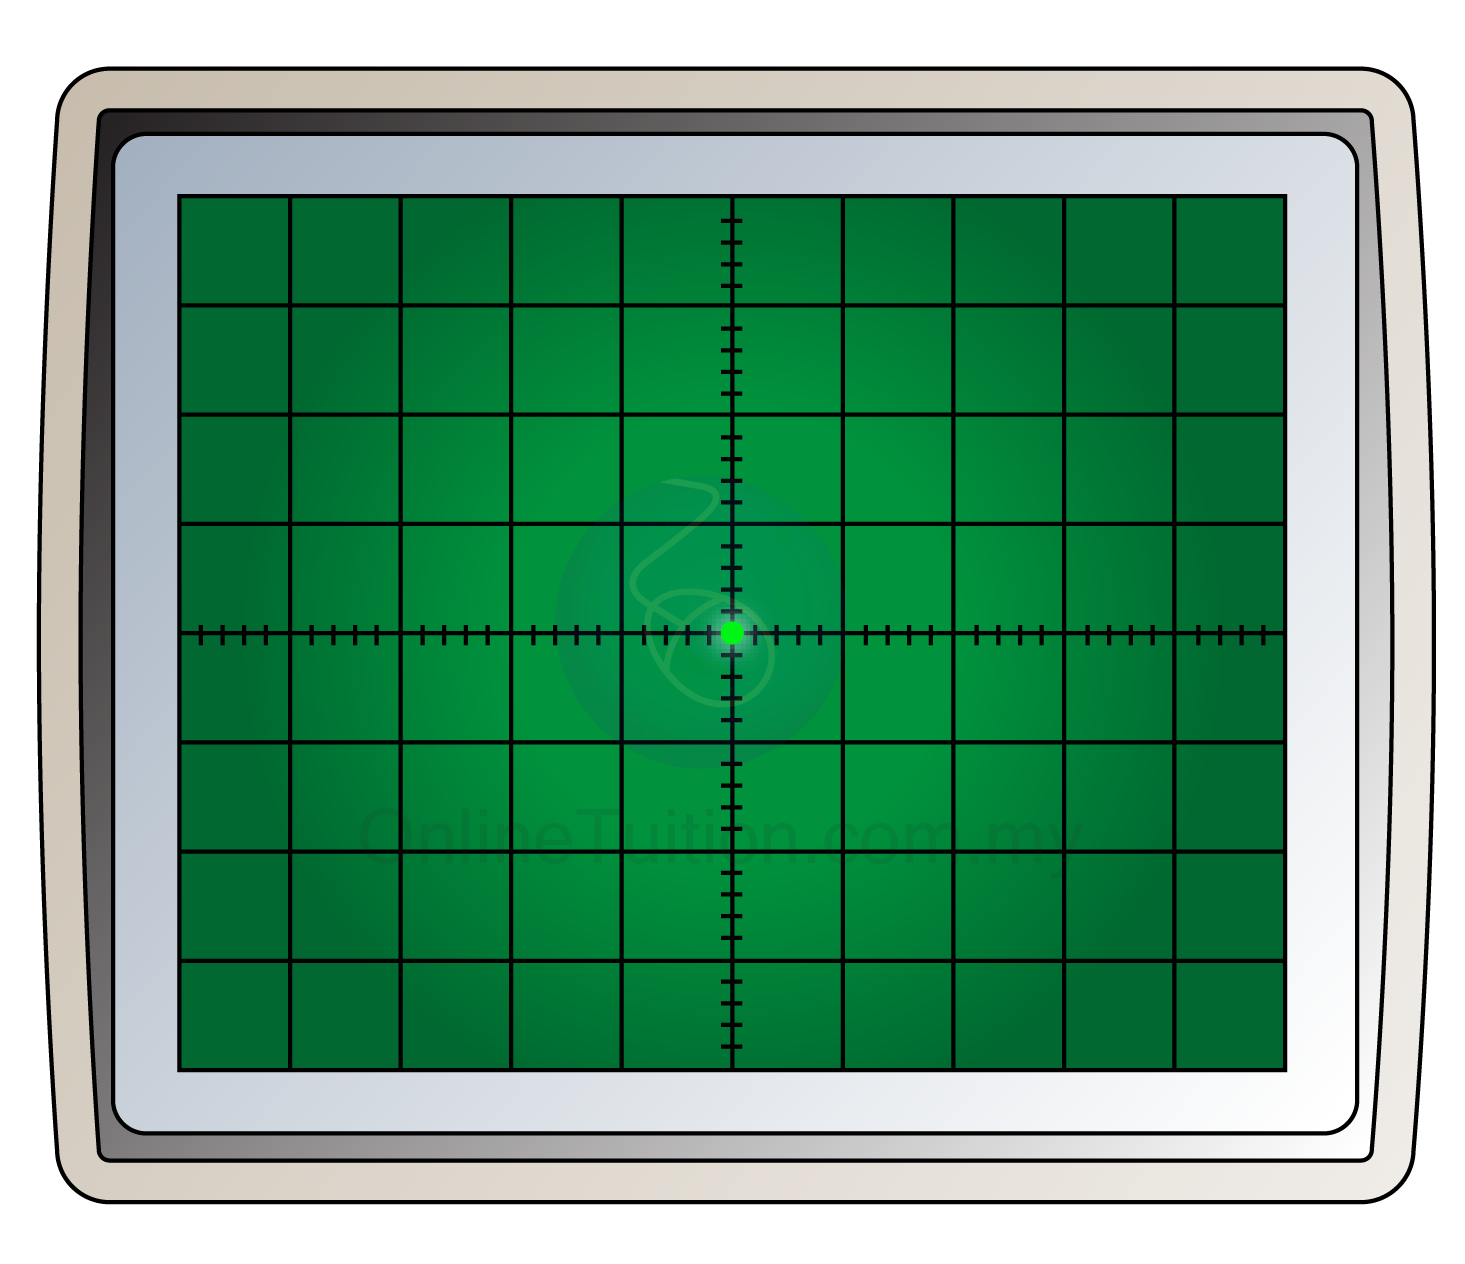 Cathode Ray Oscilloscope : Uses of cathode ray oscilloscope measuring potential